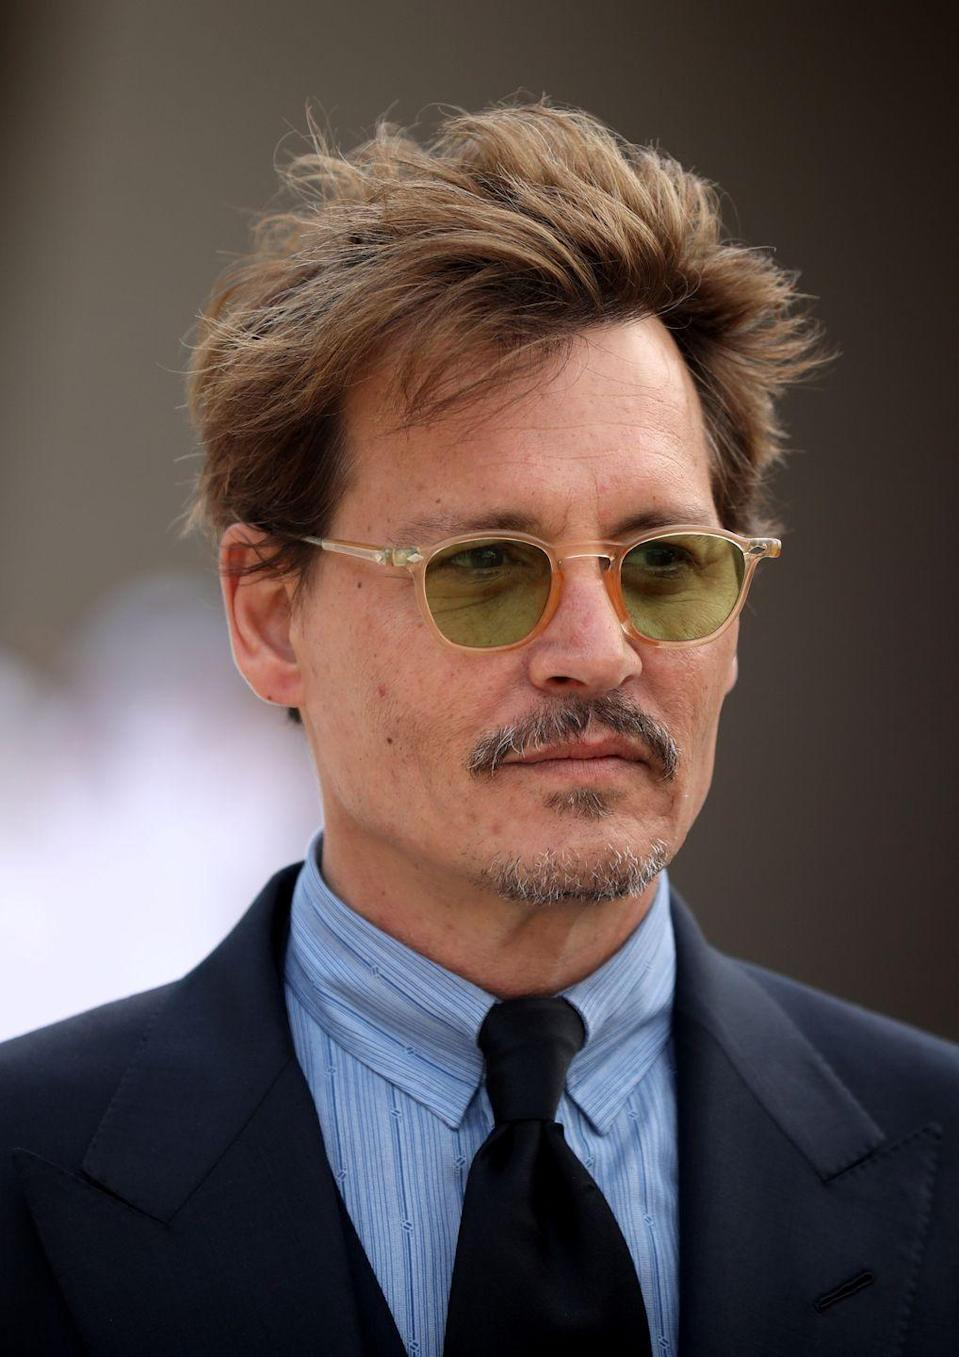 """<p>Johnny Depp's life has taken a darker turn in recent years: He was <a href=""""https://www.buzzfeednews.com/article/amberjamieson/amber-heard-johnny-depp-abuse-allegations"""" rel=""""nofollow noopener"""" target=""""_blank"""" data-ylk=""""slk:accused"""" class=""""link rapid-noclick-resp"""">accused</a> of domestic abuse by his ex-wife Amber Heard, and he <a href=""""https://deadline.com/2018/06/johnny-depp-rolling-stone-650m-film-fortune-almost-all-gone-report-1202415197/"""" rel=""""nofollow noopener"""" target=""""_blank"""" data-ylk=""""slk:reportedly"""" class=""""link rapid-noclick-resp"""">reportedly</a> lost his fortune. </p>"""